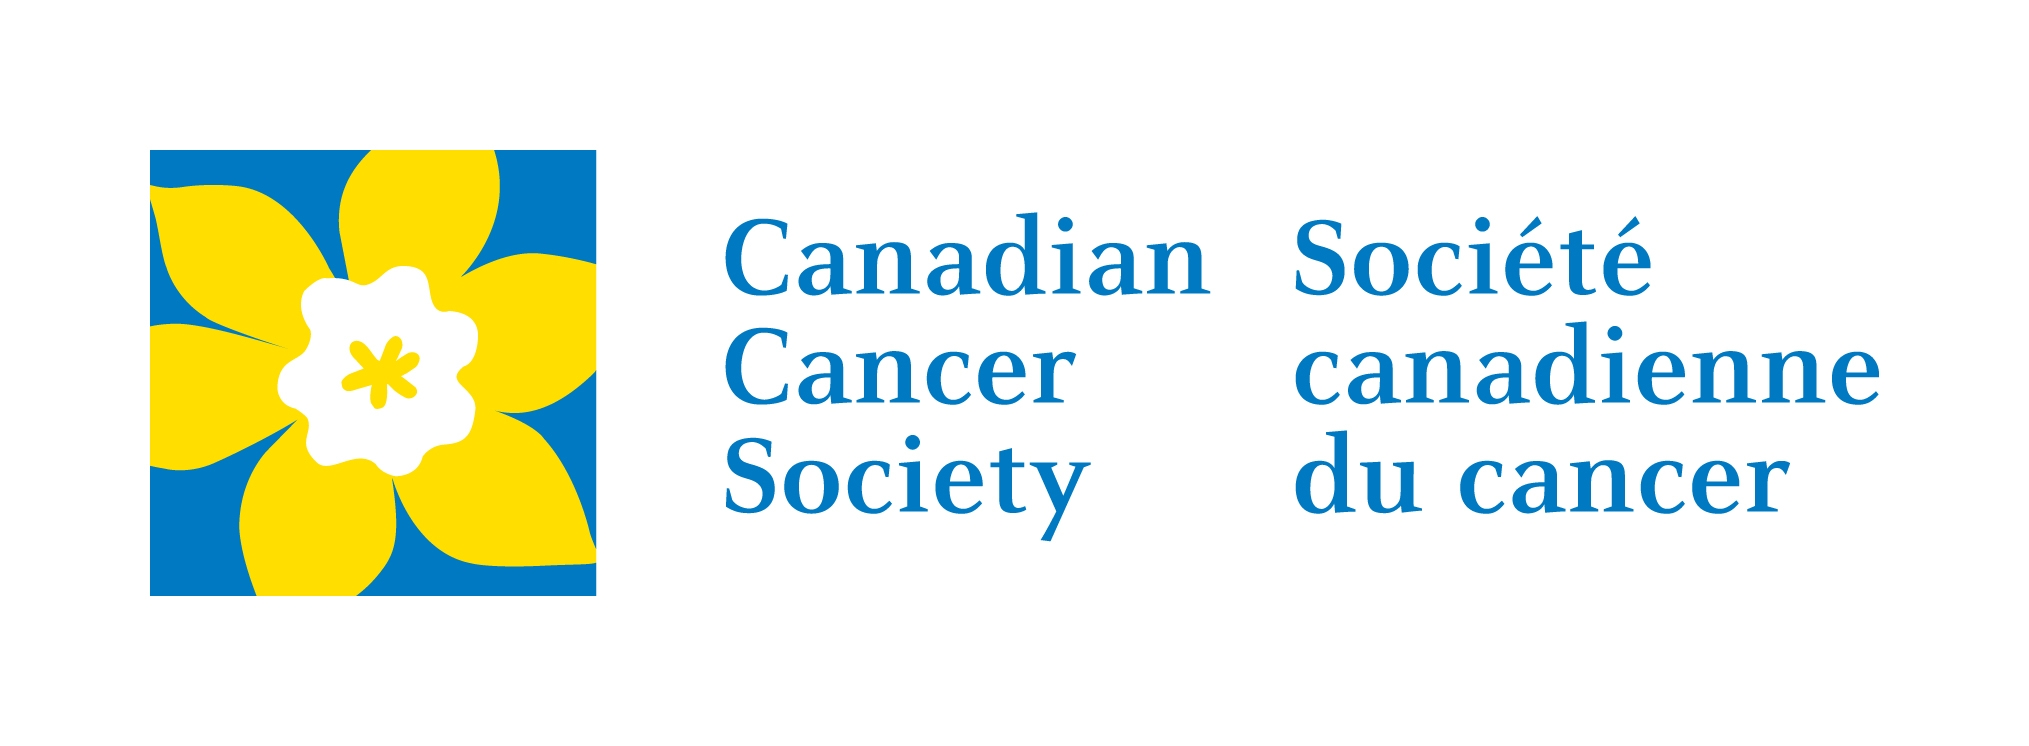 Image result for images of canadian cancer society logo